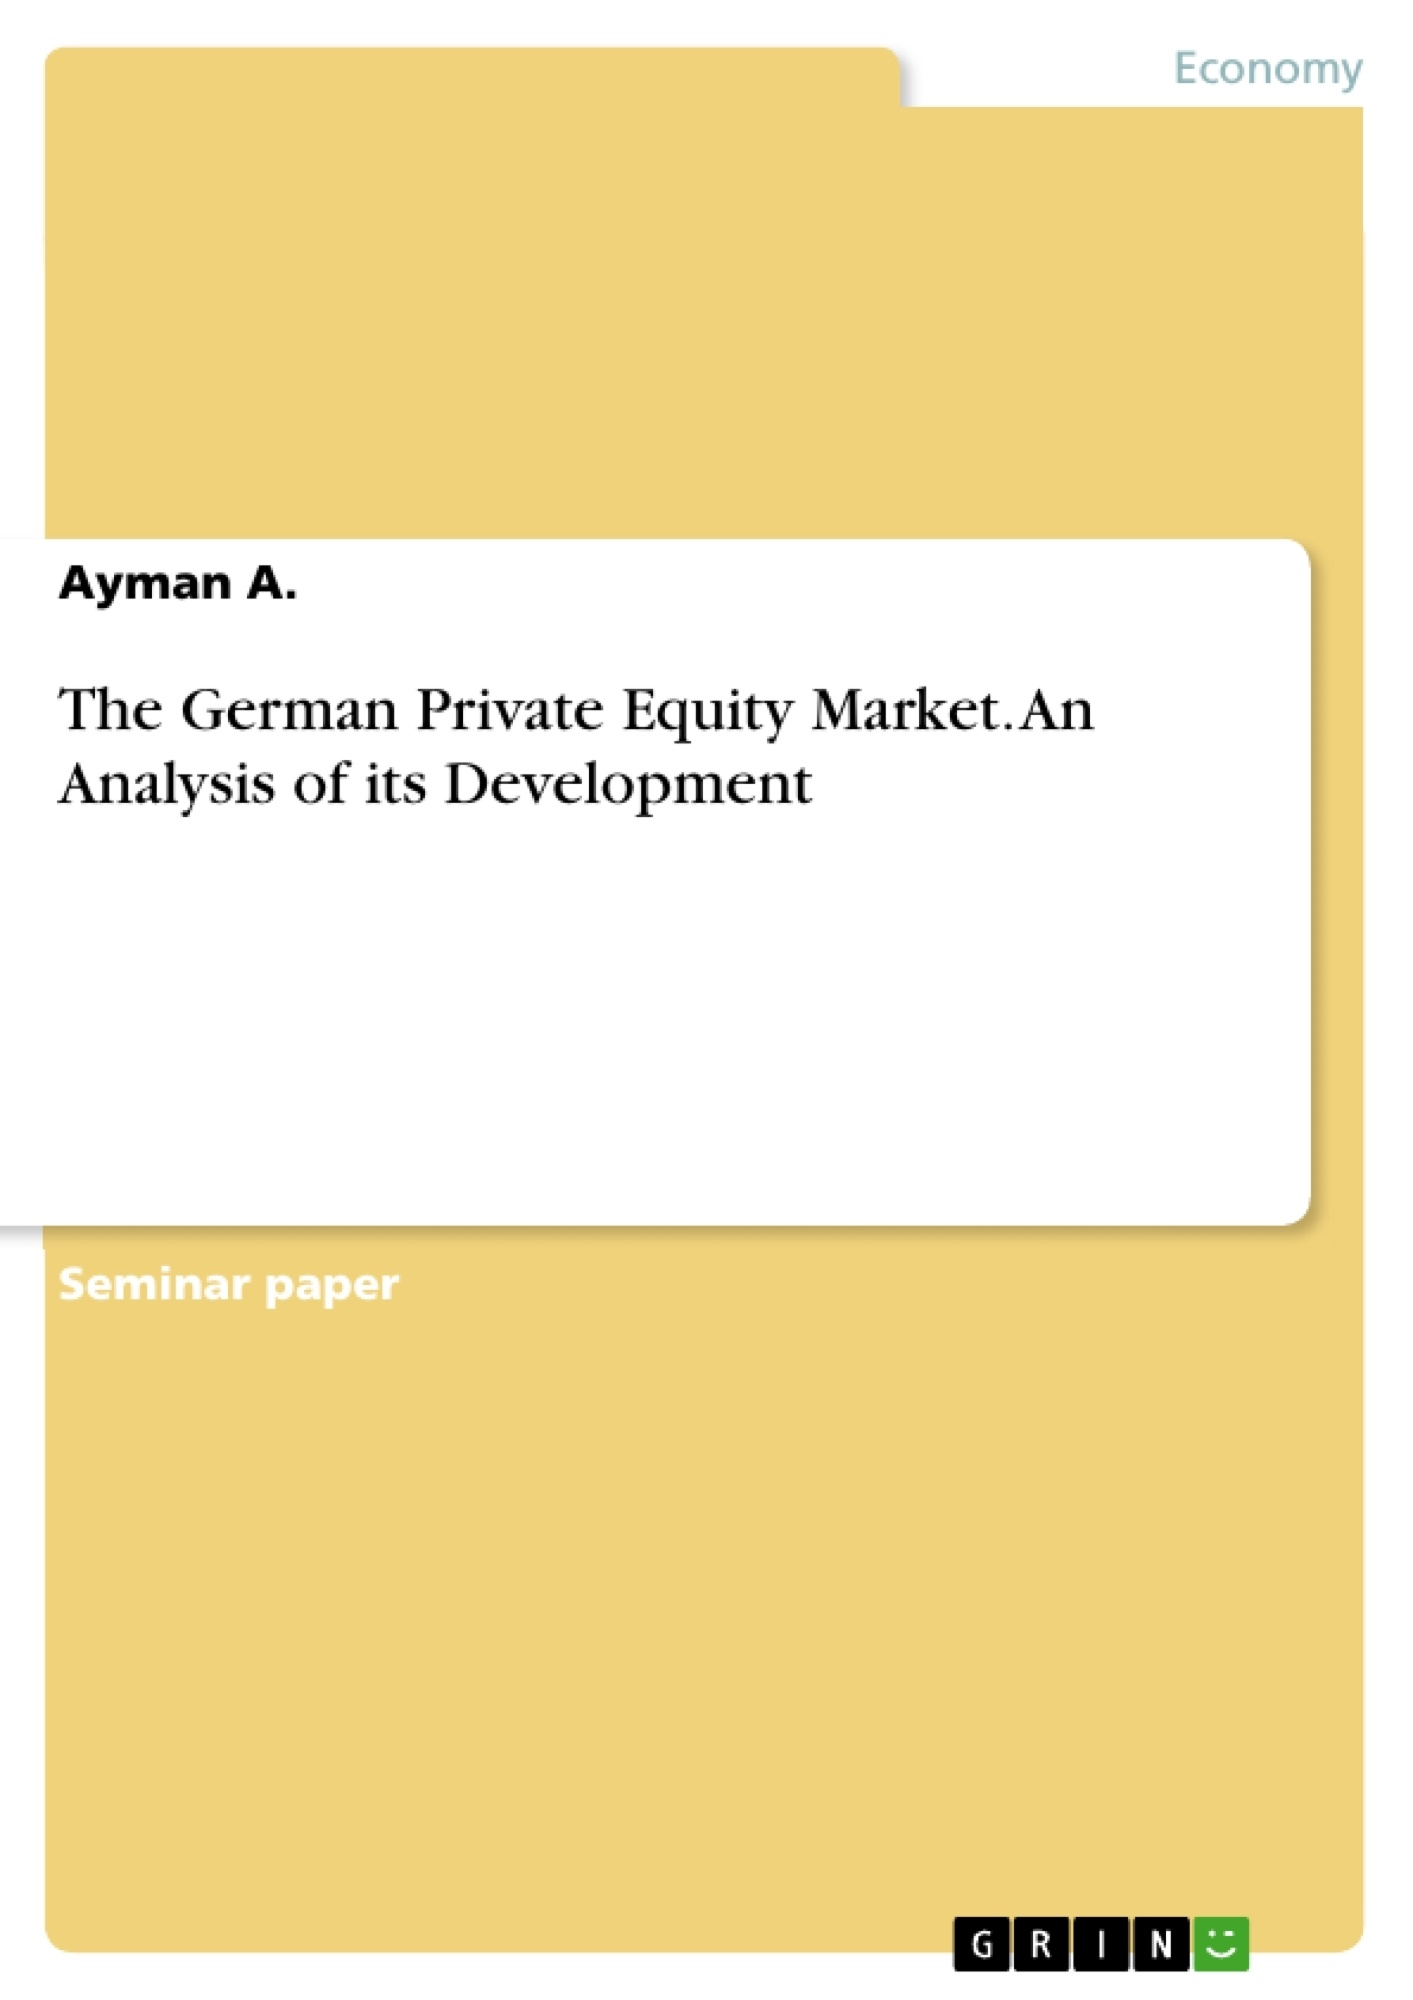 Title: The German Private Equity Market. An Analysis of its Development